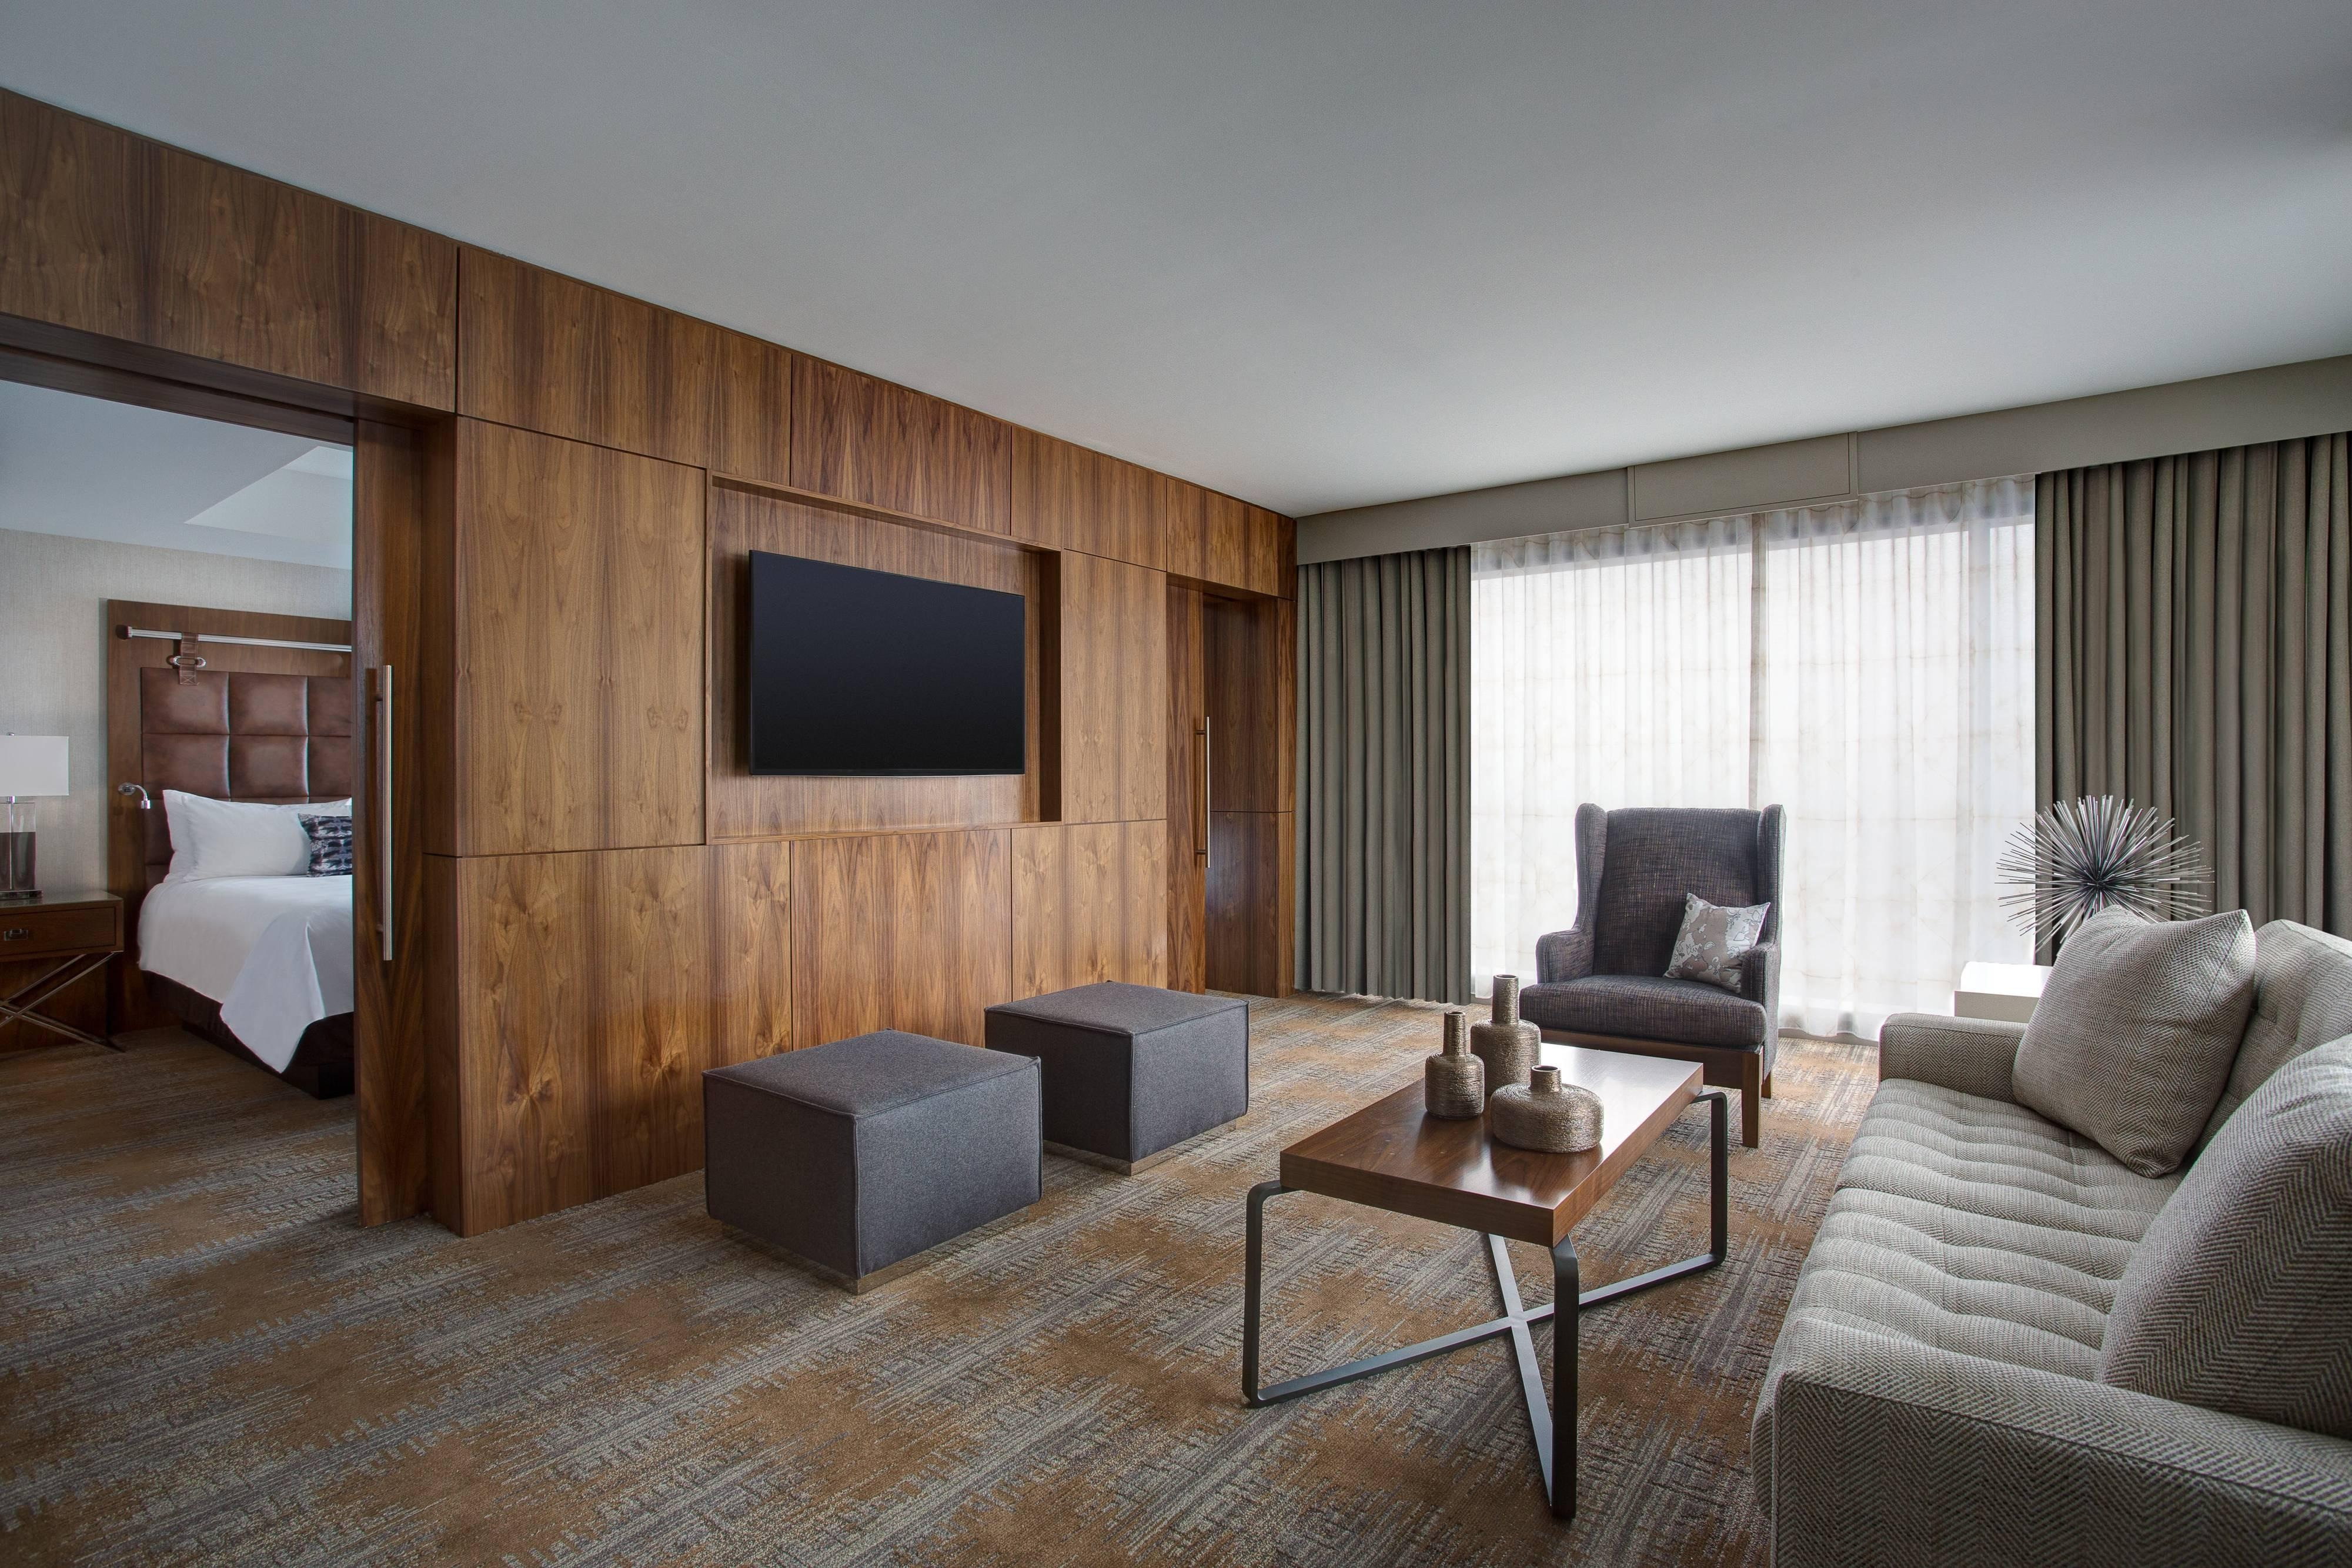 Luxury hotel rooms and suites in austin tx for Living room austin